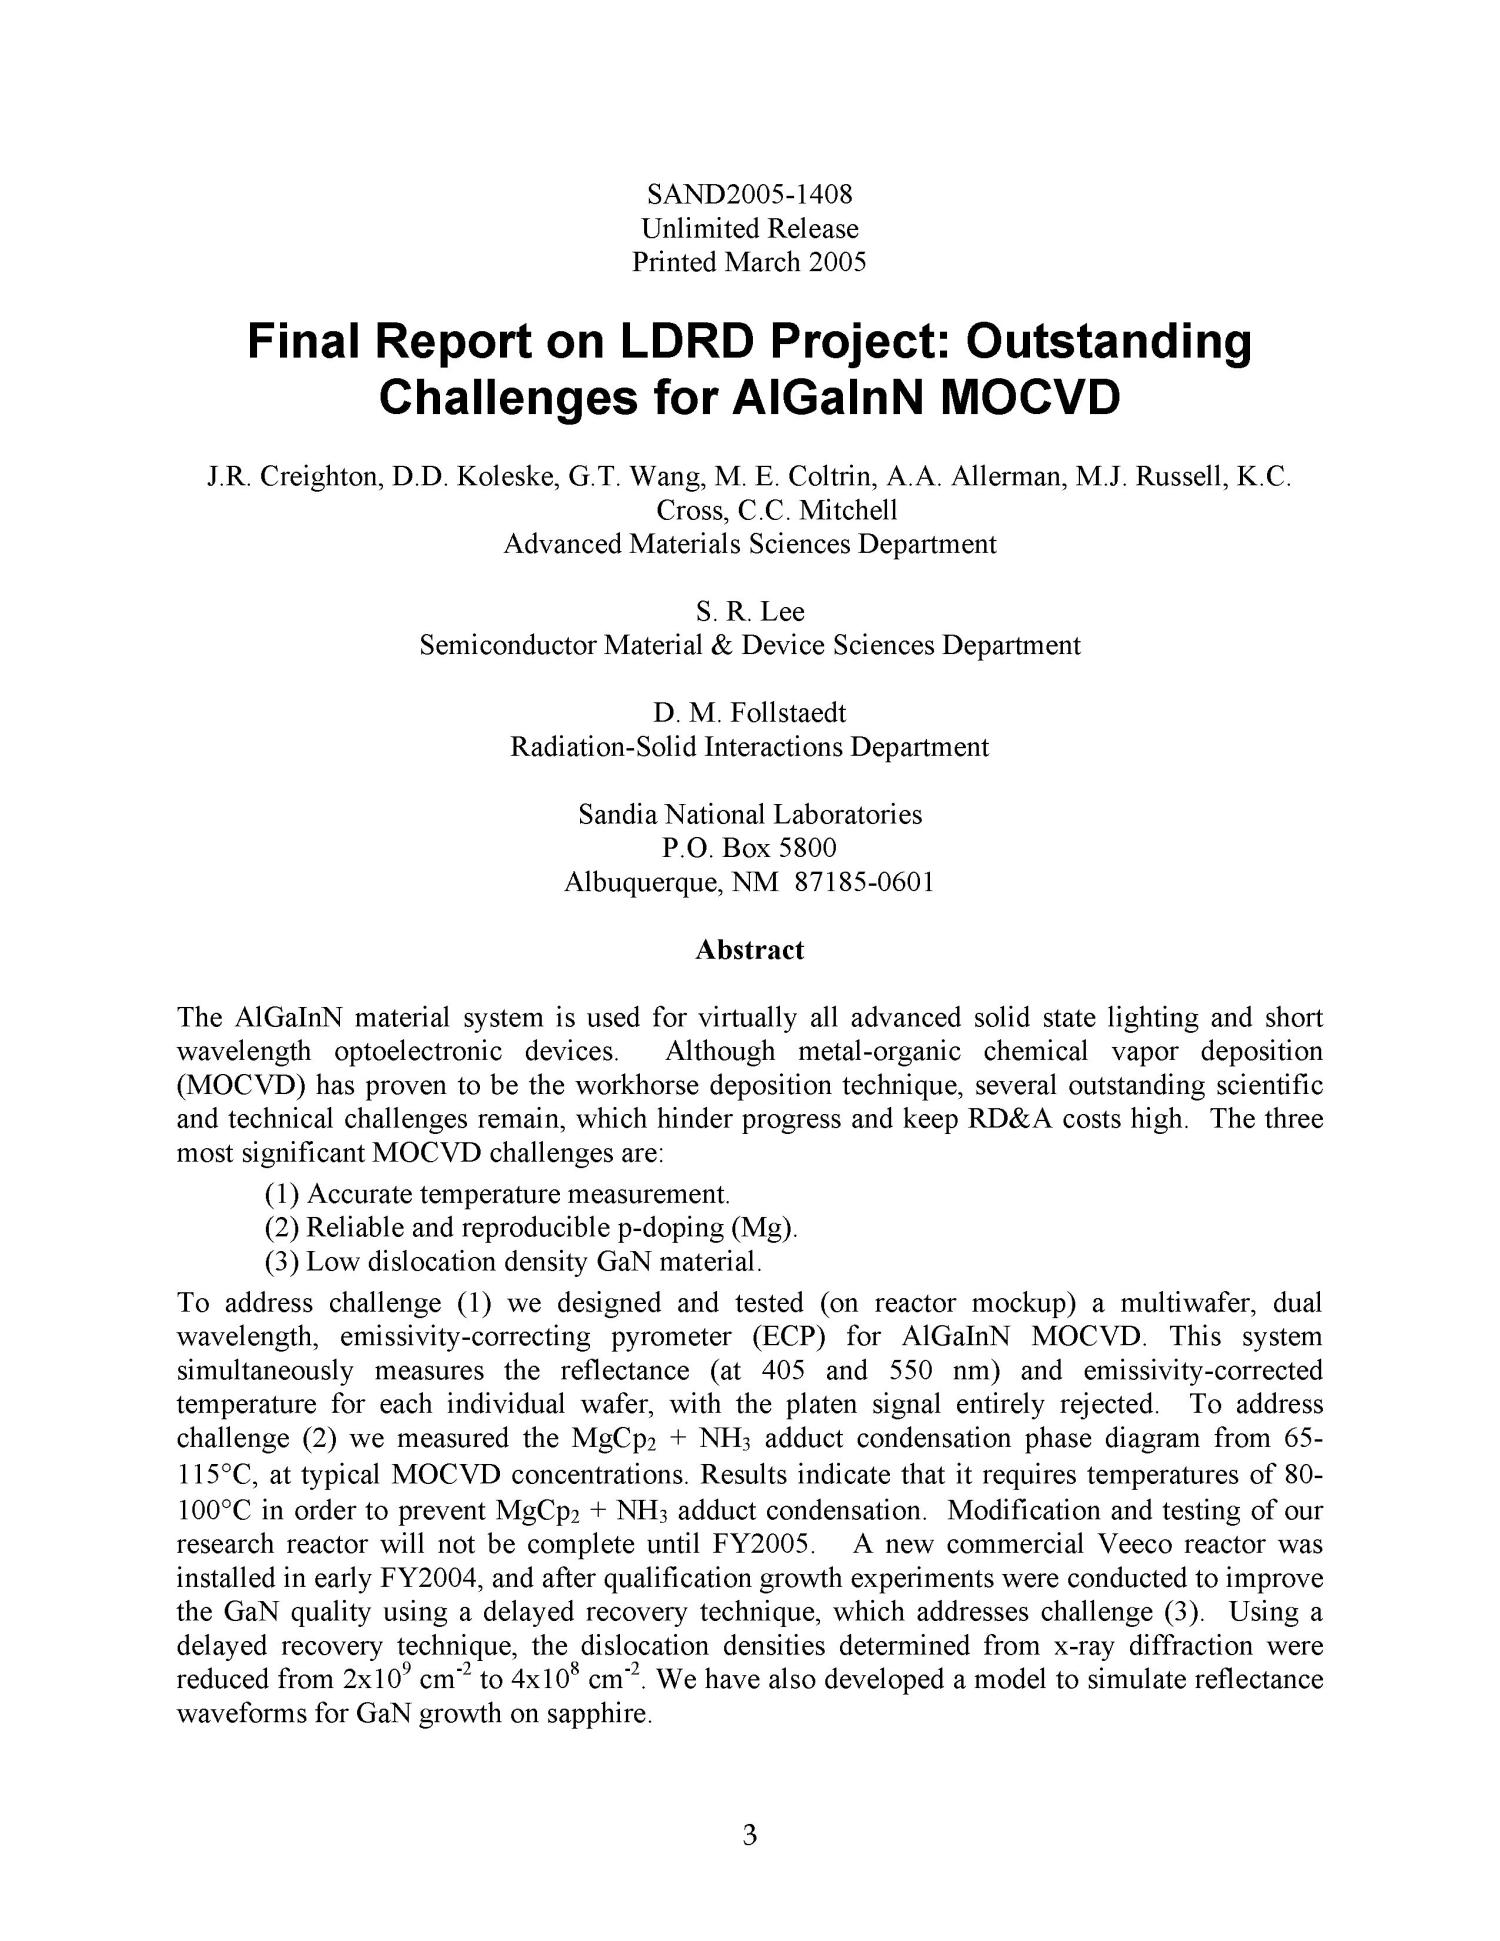 Final report on LDRD project : outstanding challenges for AlGaInN MOCVD.                                                                                                      [Sequence #]: 3 of 44